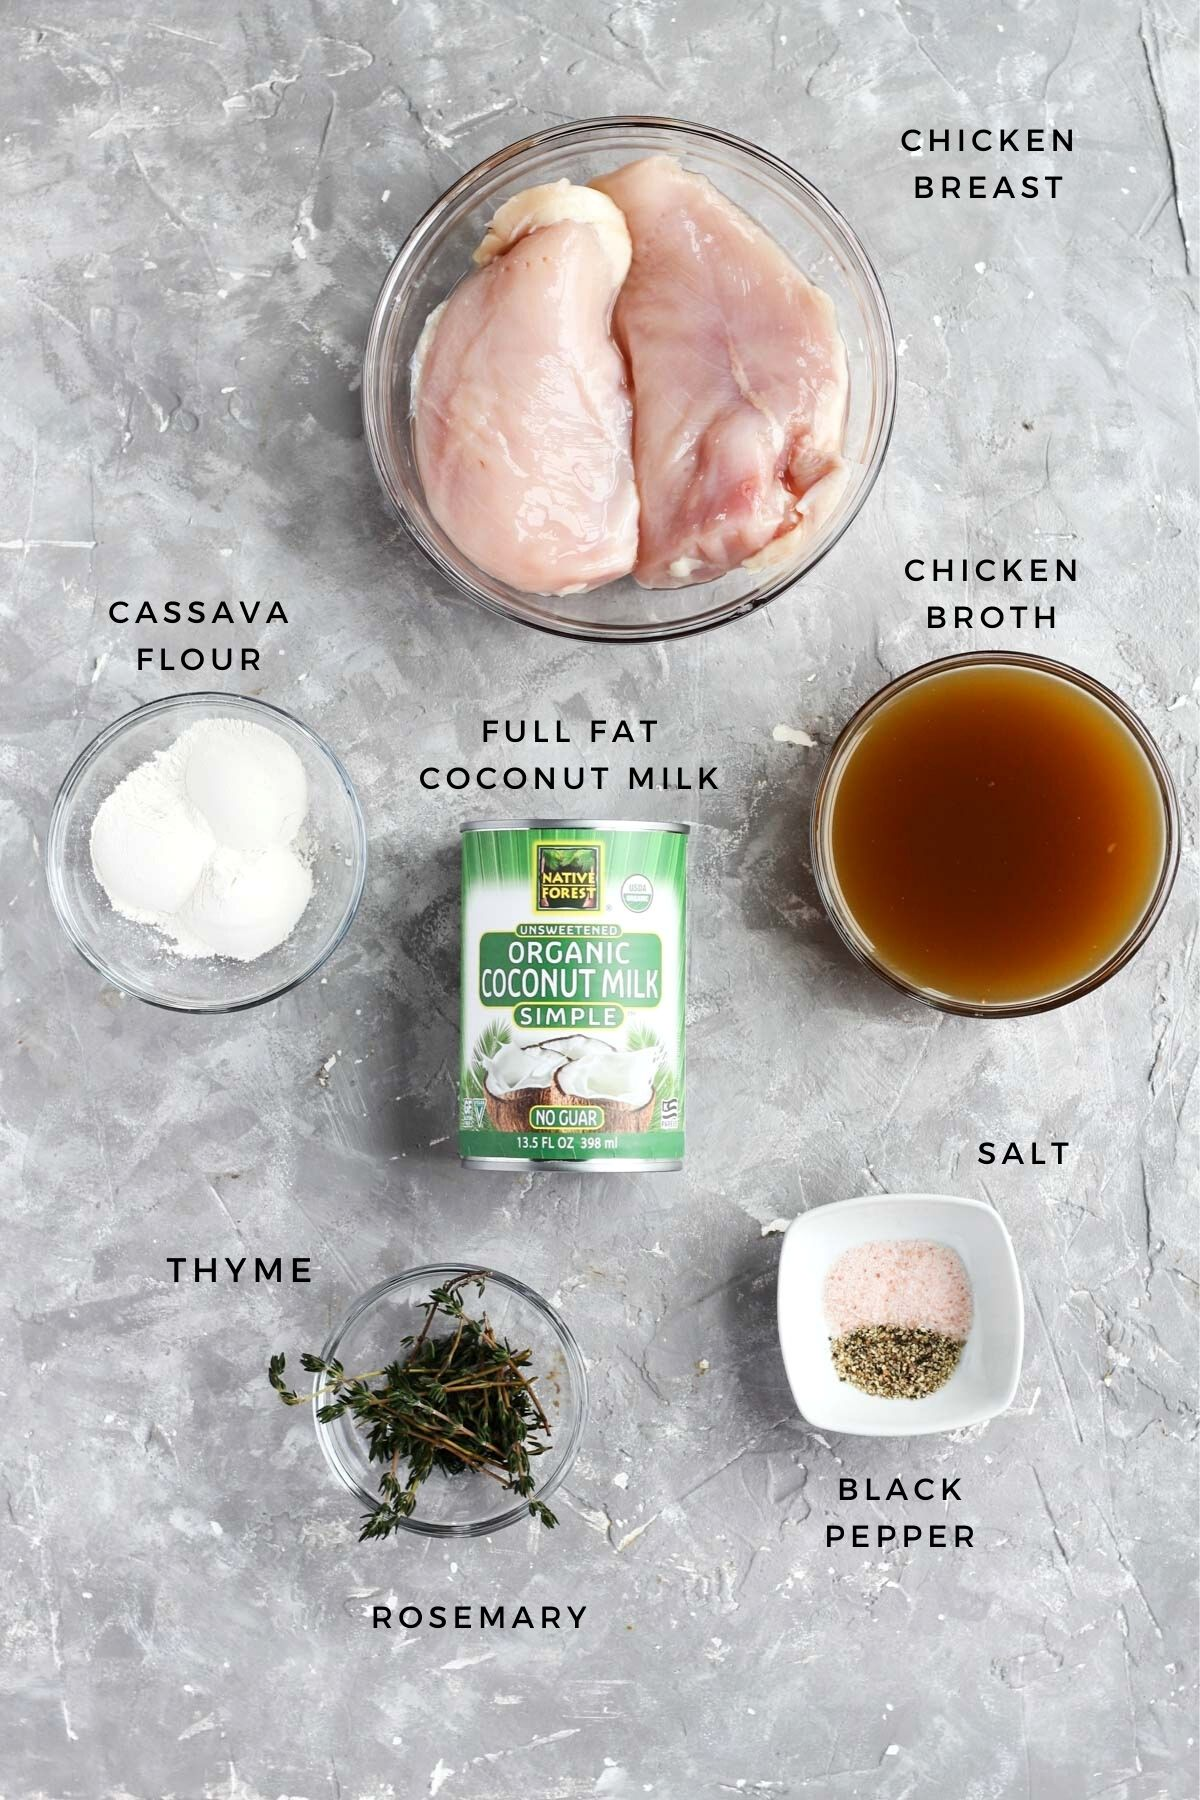 Overhead shot of broth ingredients laid out.